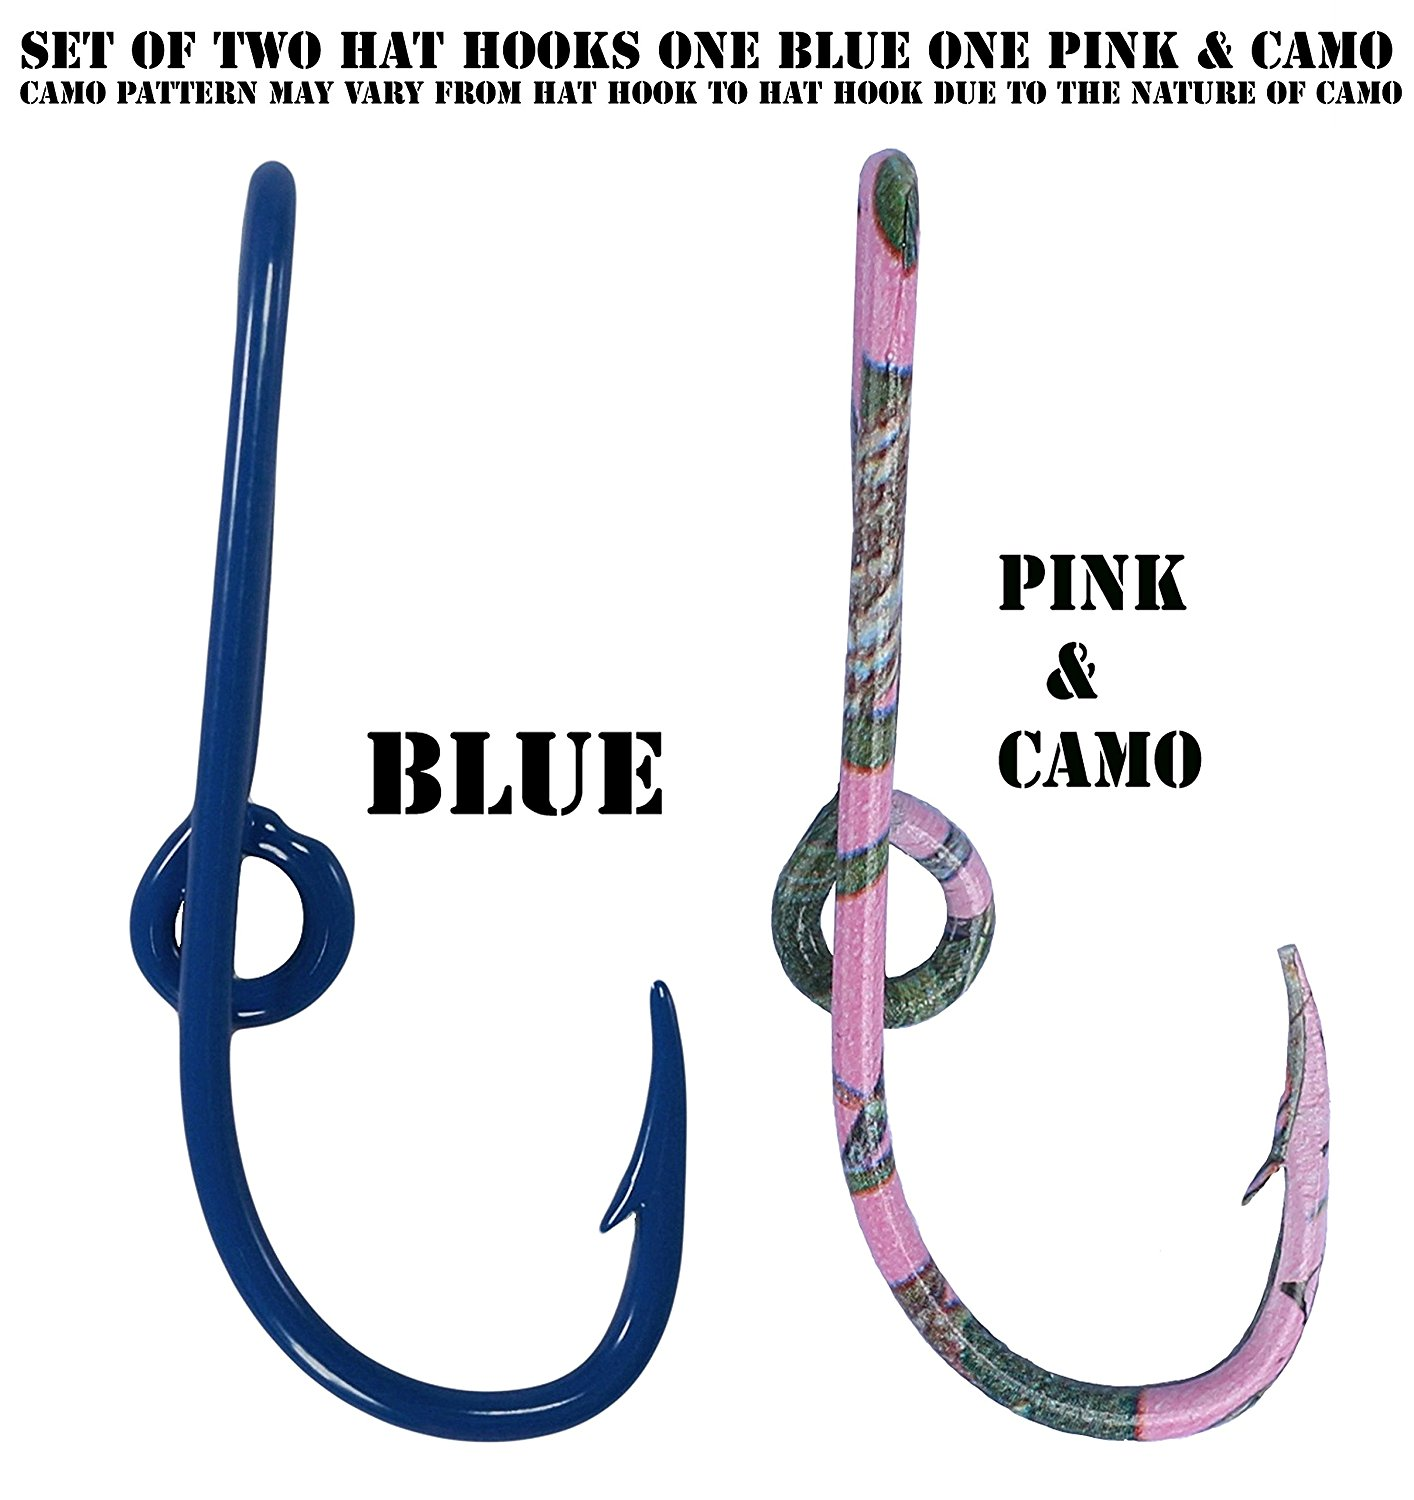 Custom Colored Eagle Claw Hat Fish Hooks for Cap -Set of Two Hat pins- One Blue and One Pink & Camo Hat Hook Money/Tie Clasp